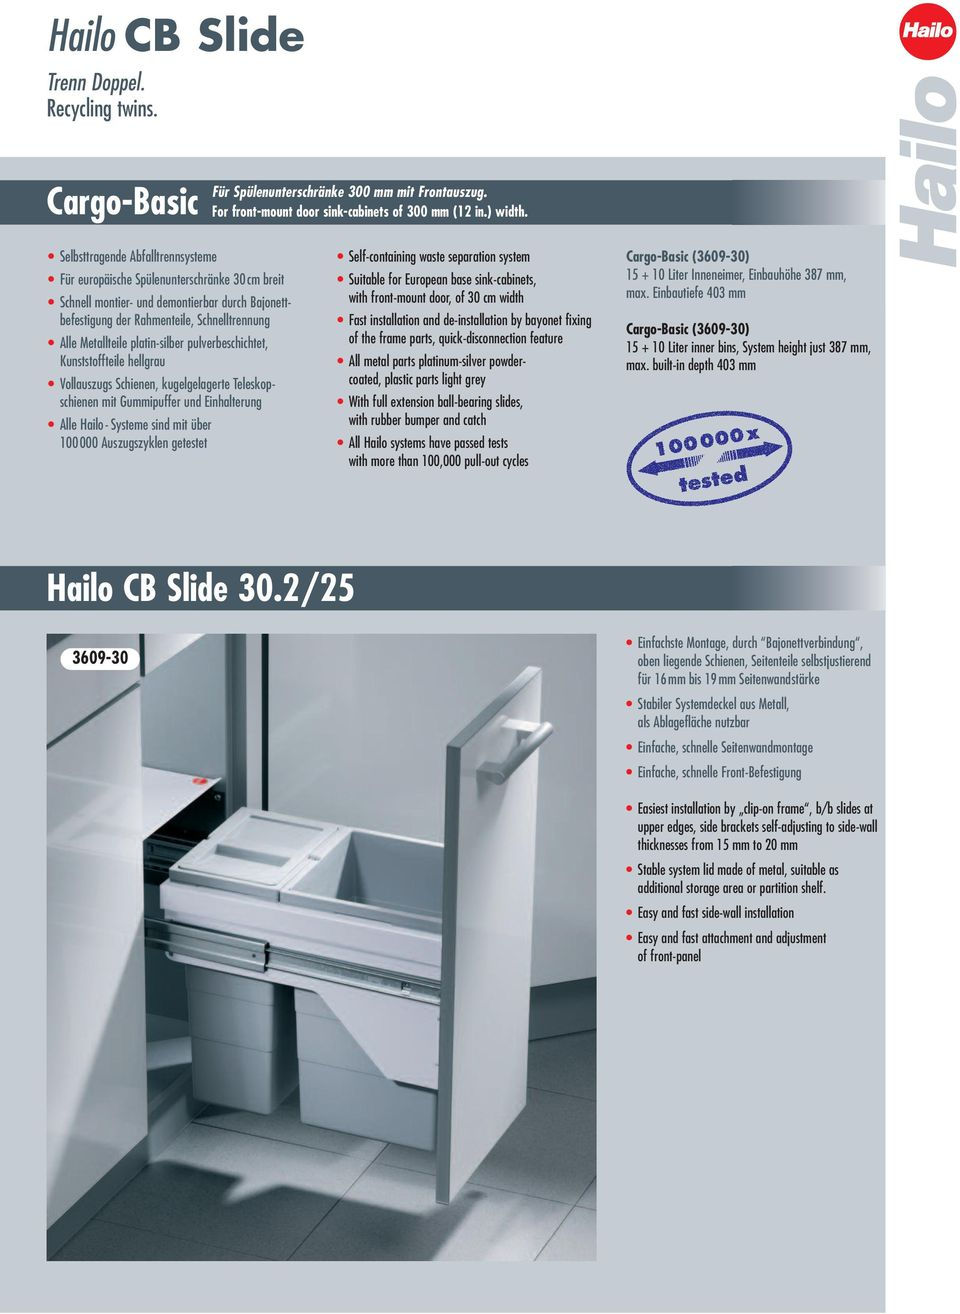 zyklen getestet Self-containing waste separation system with front-mount door, of 30 cm width with more than 00,000 pull-out cycles (3609-30) 5 + 0 Liter Inneneimer, Einbauhöhe 387 mm, max.